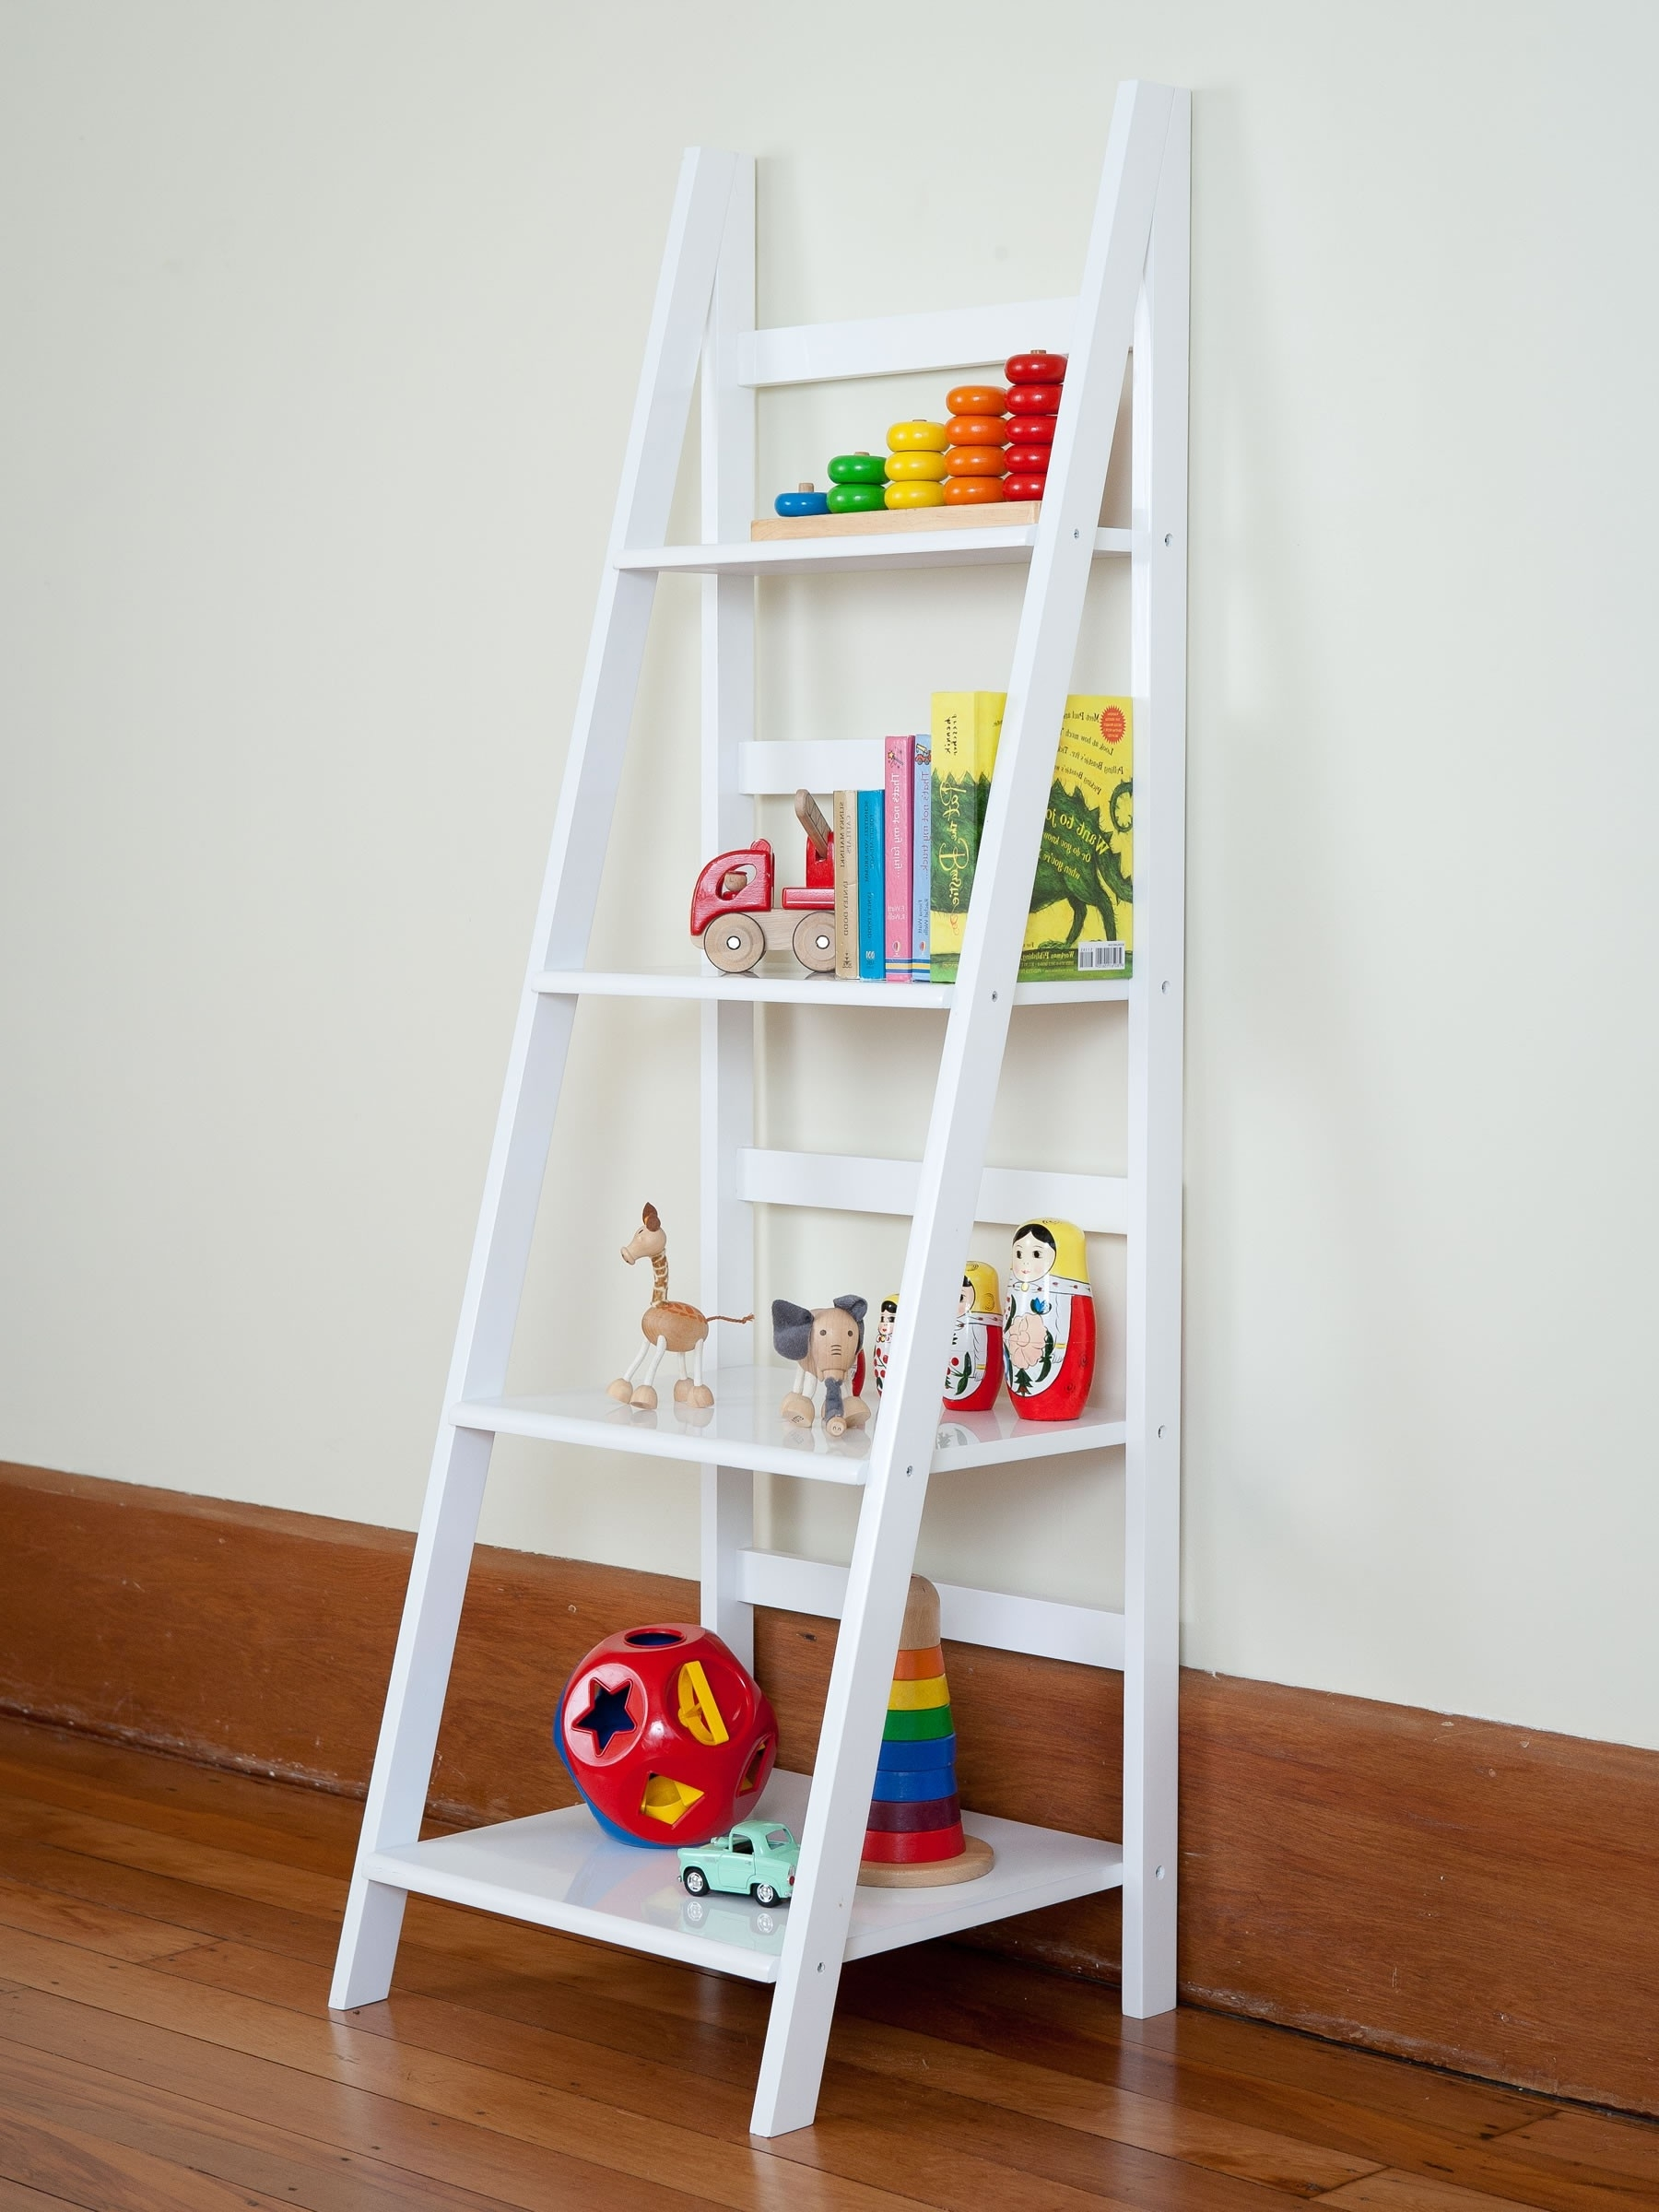 Widely Used Enjoyable White Wooden Ladder Shelf As Toys Storage Added White Throughout White Ladder Shelf (View 13 of 15)